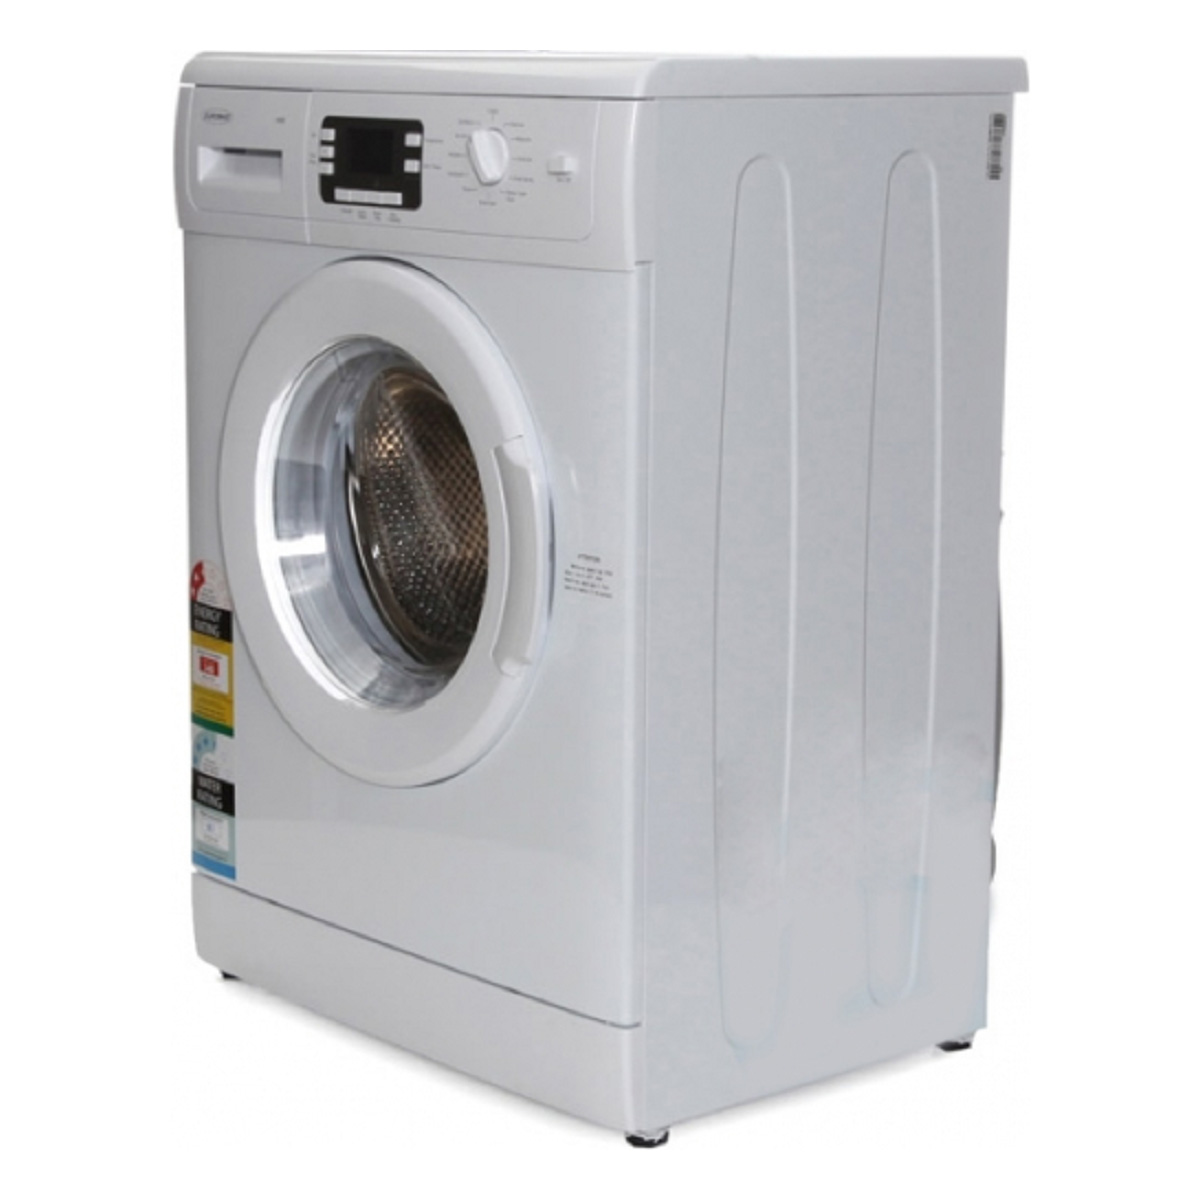 Euromaid WM7 7kg Front Load Washing Machine 23547